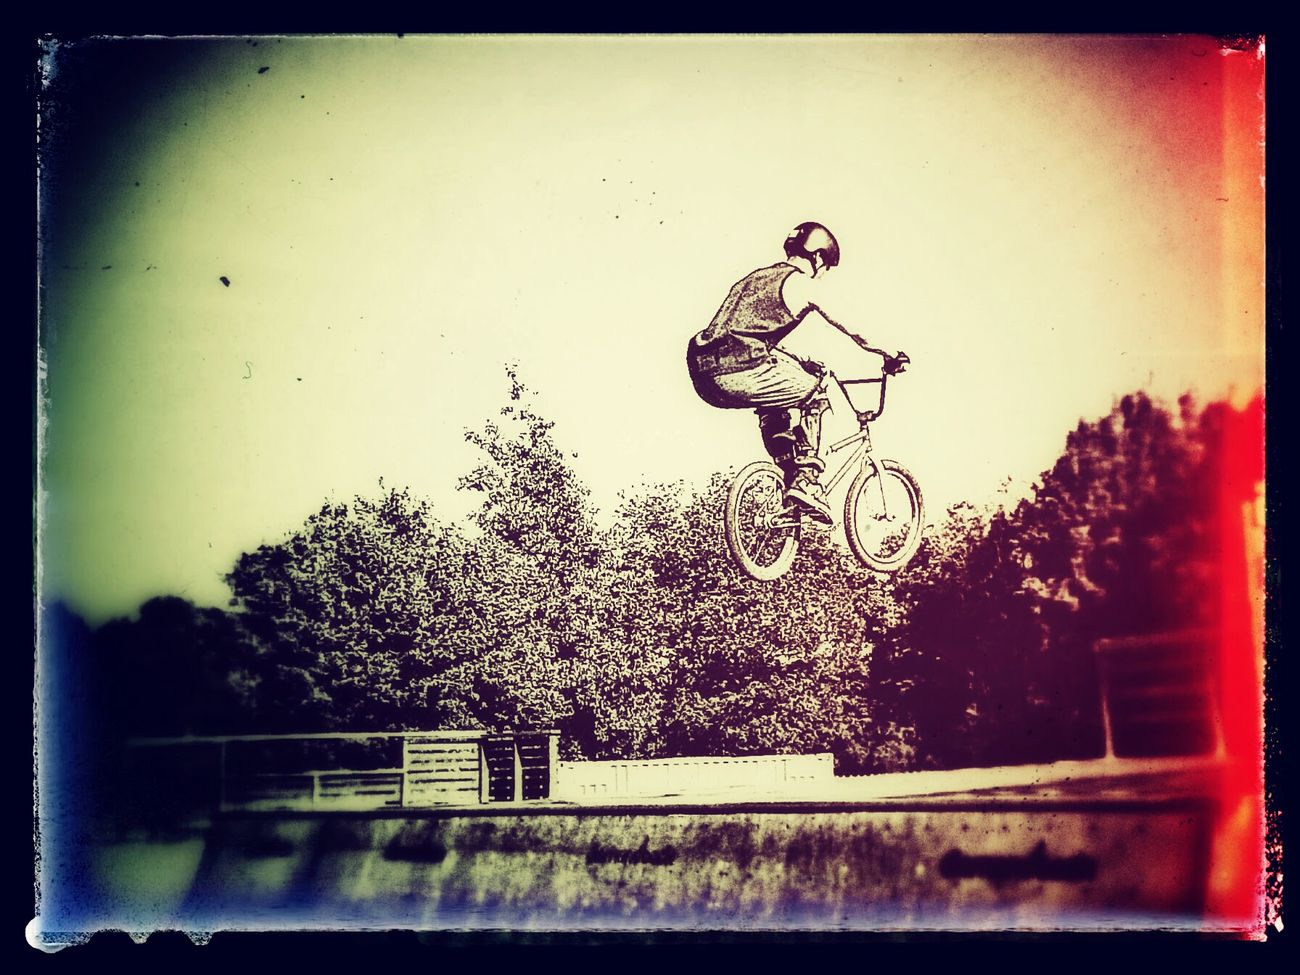 Extreme Kickflip Summer, Chilling, Enjoying The Sun Tricks Bmxstyle BMX ❤ Funtimes bike, rude, jump, aimhigh, Enjoying Life